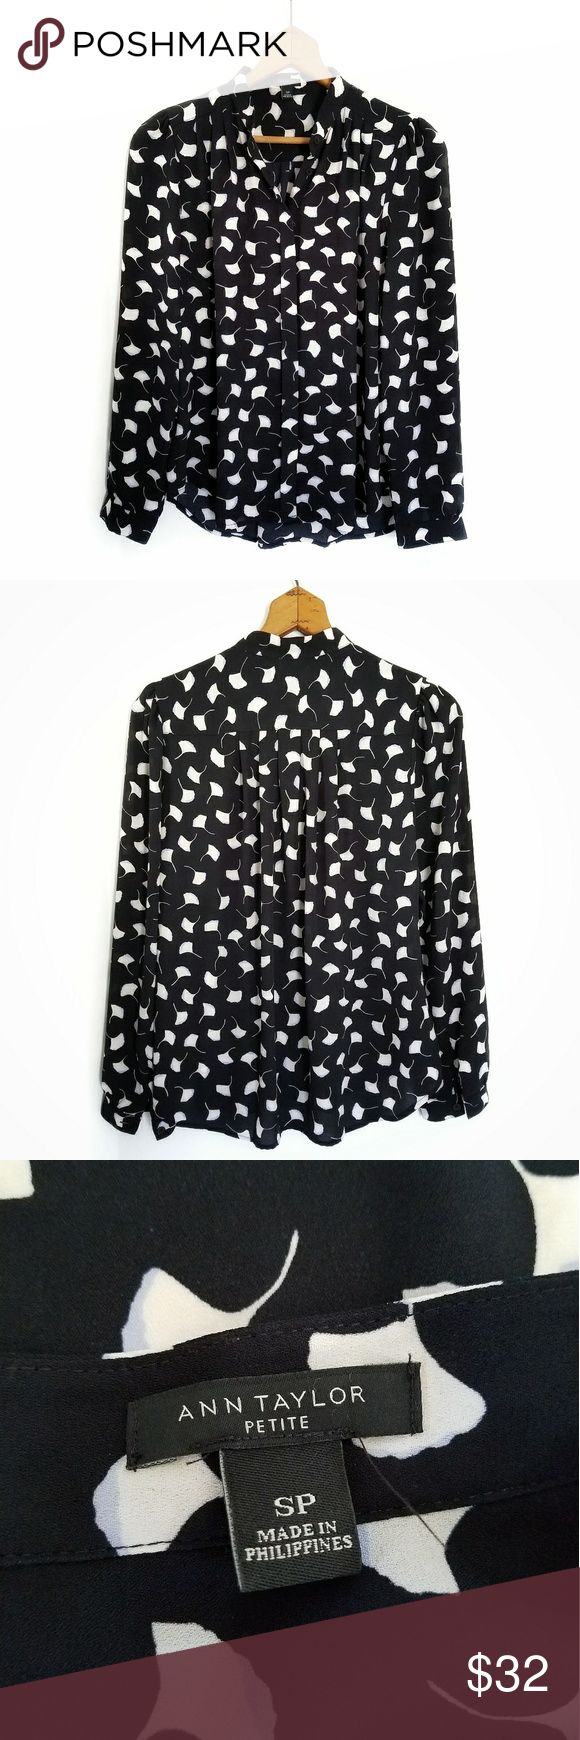 "Ann Taylor black floral dress blouse button front Size Petite Small Bust 21.5"" underarm to underarm Length 25"" Ann Taylor black and white floral print blouse. Long sleeve button front dressy top. Excellent used condition! No holes, stains or wash wear. Ann Taylor Tops Blouses"